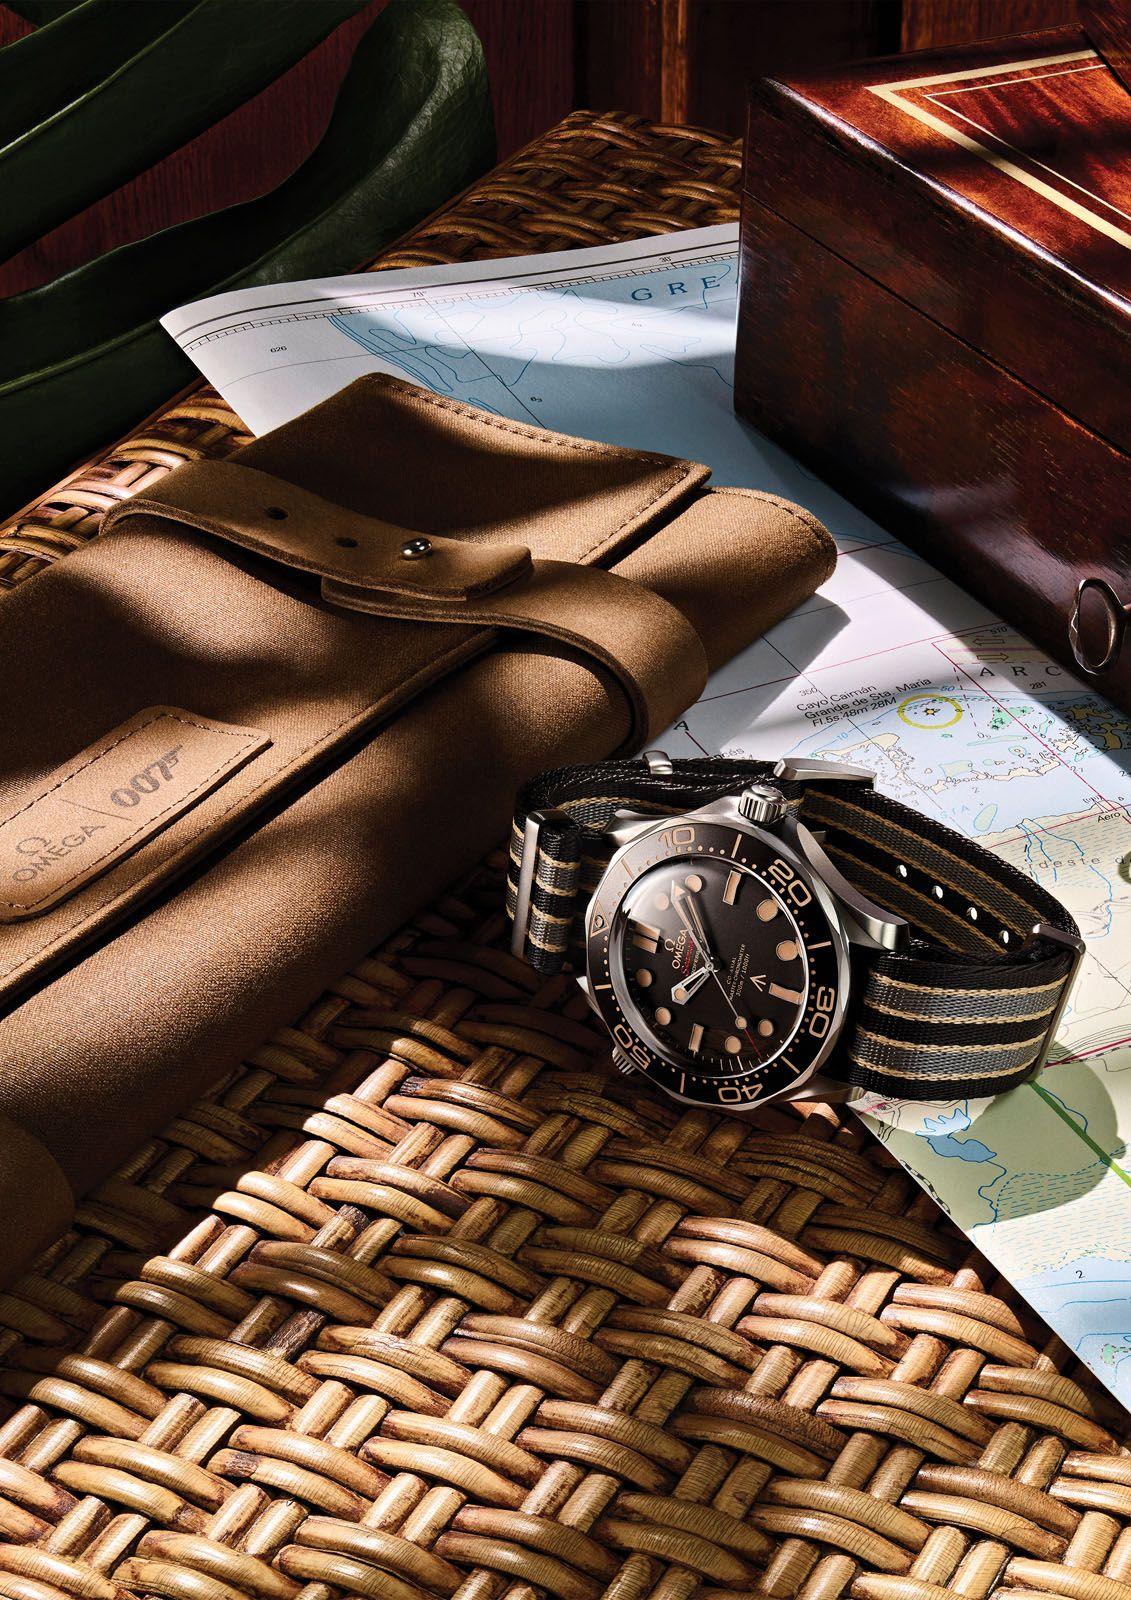 The Seamaster Diver 300M 007 Edition comes with either a striped Nato strap or a titanium mesh bracelet